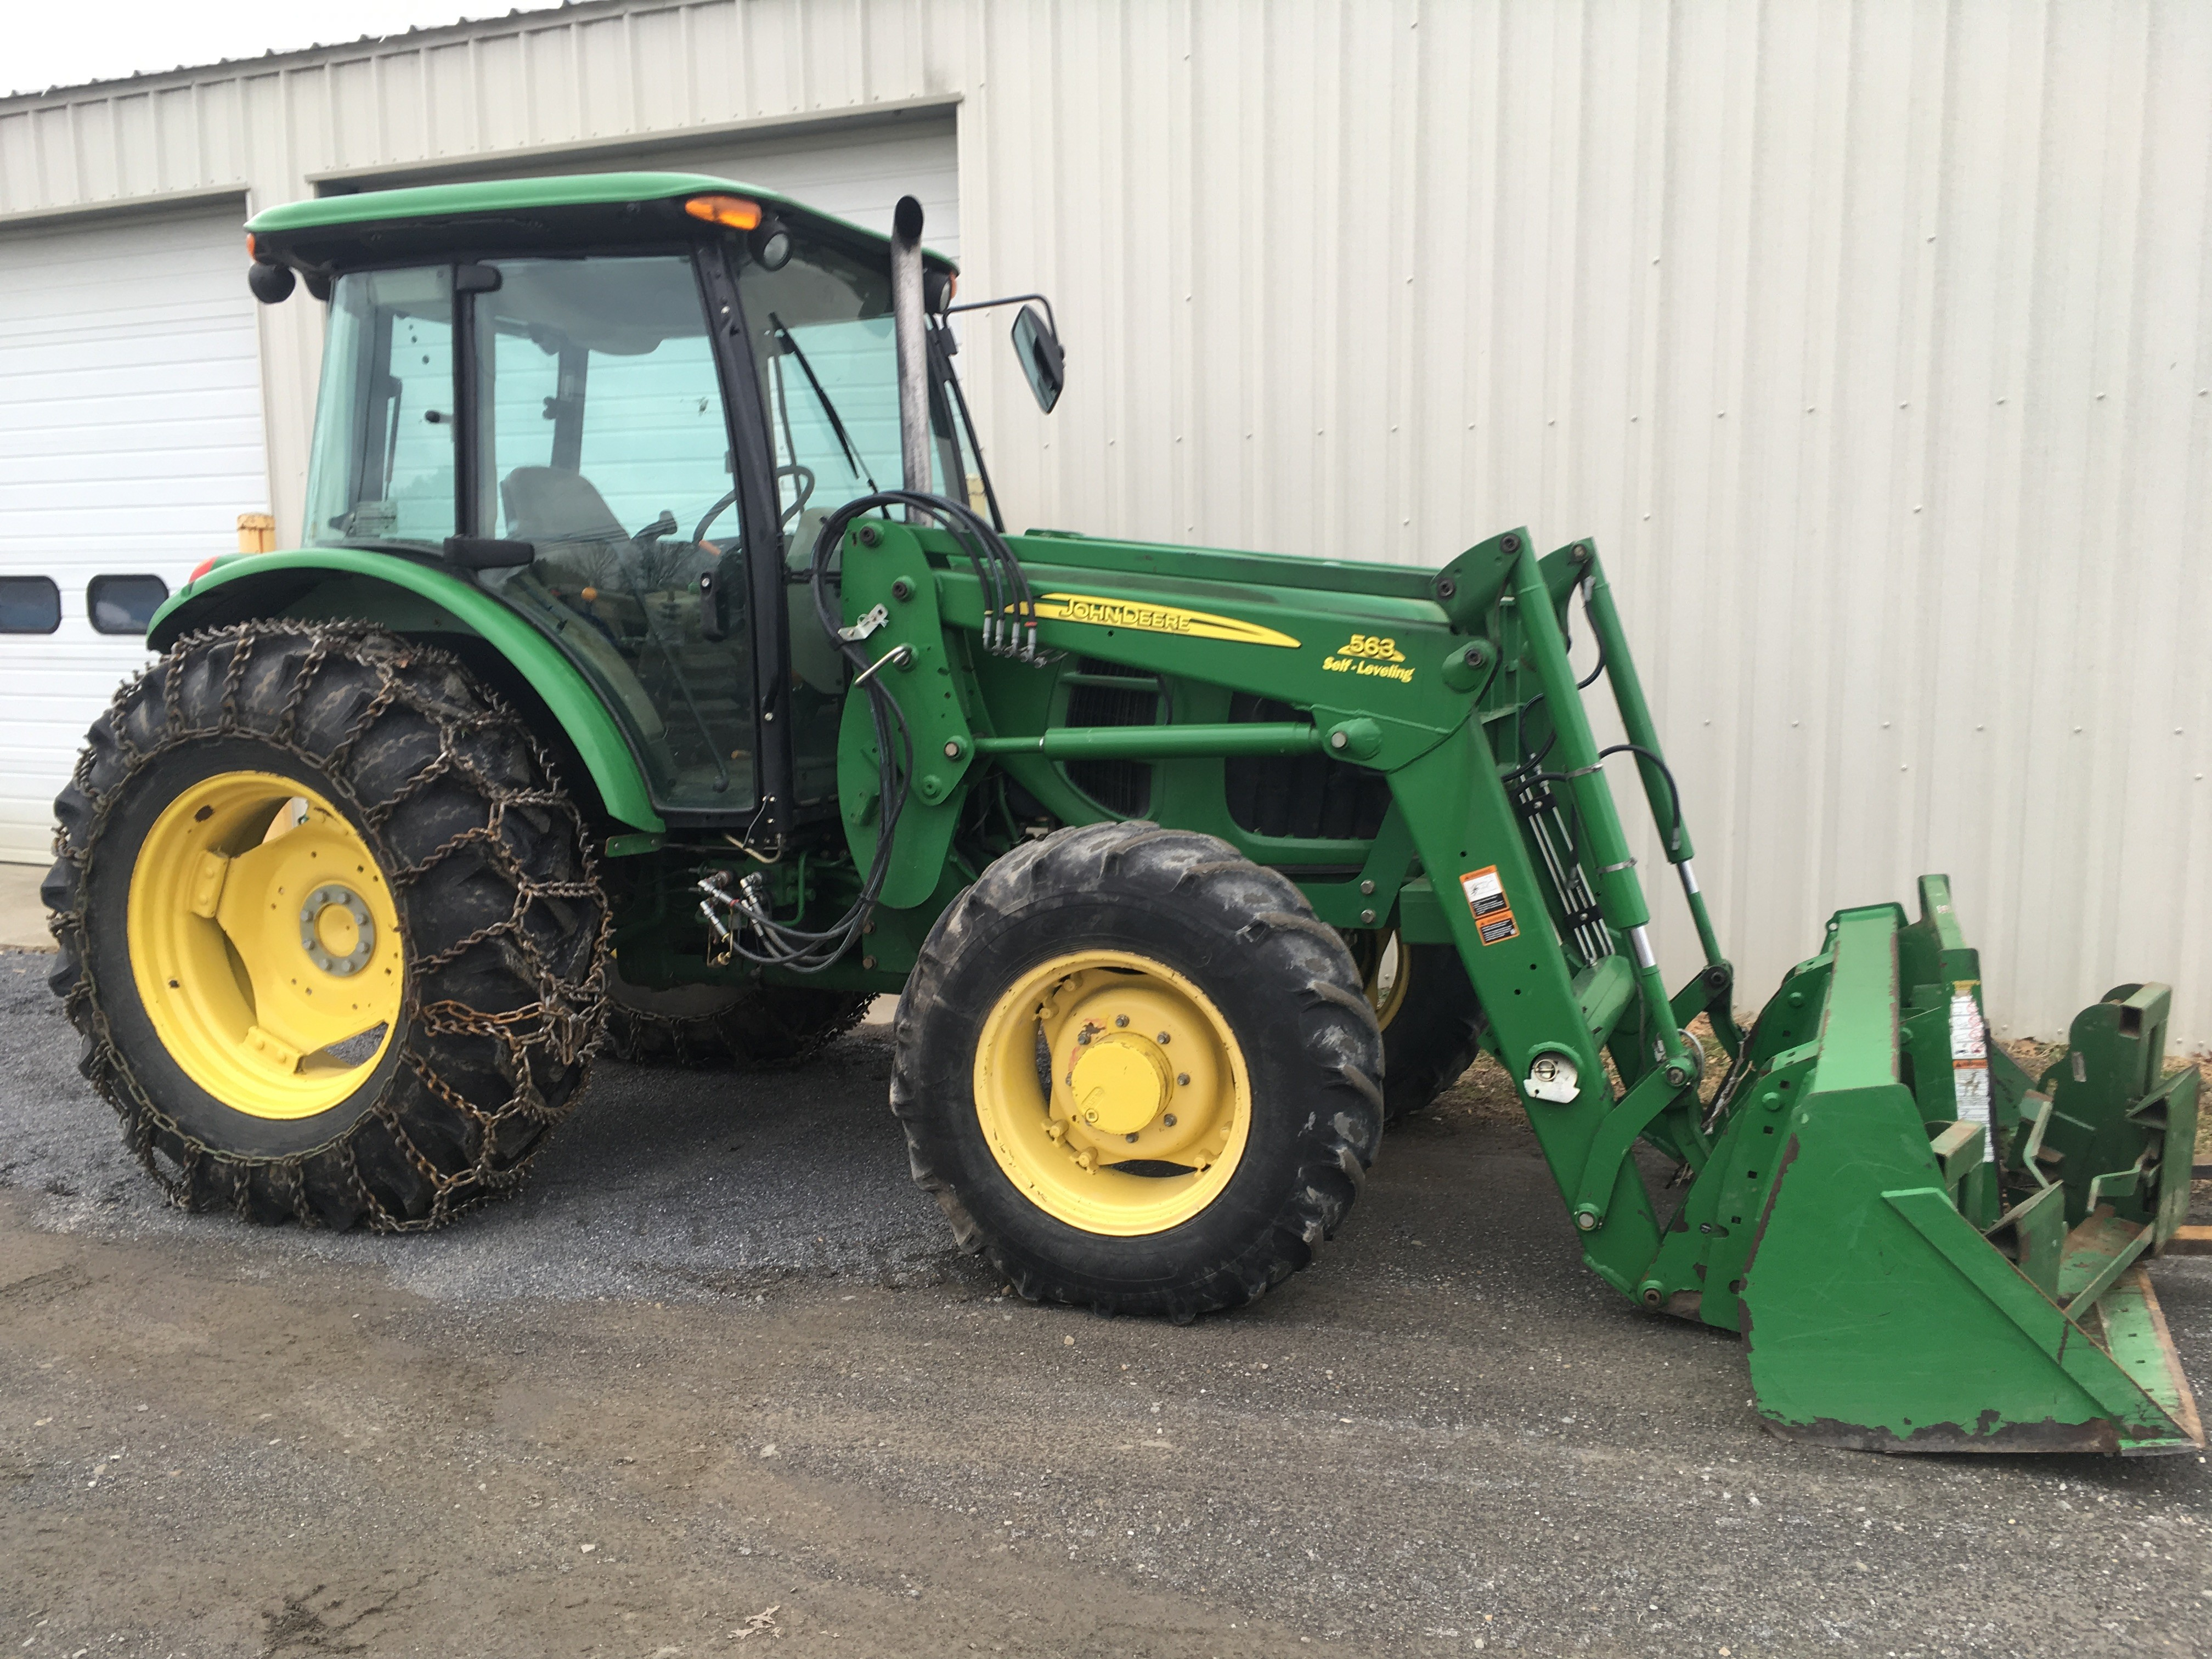 Https Email Johndeere Com >> Used Inventory